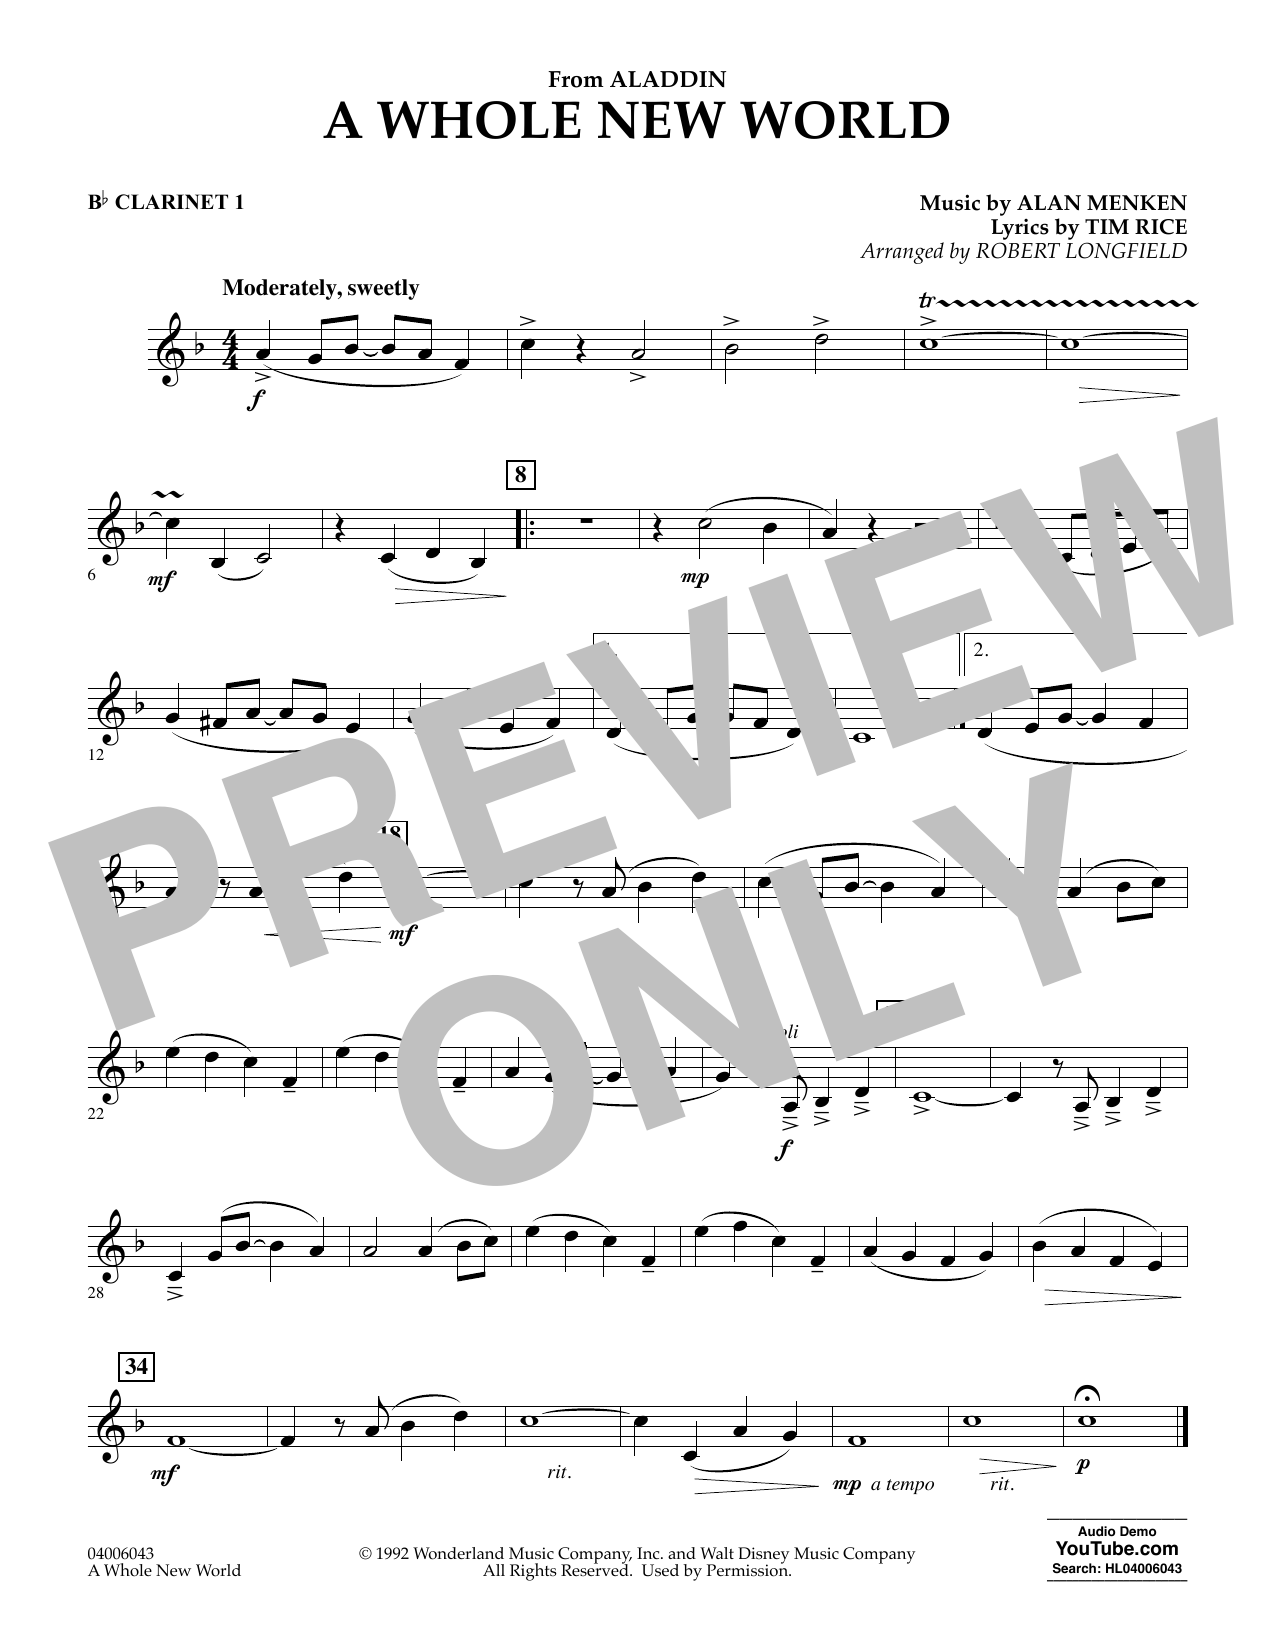 Download Alan Menken 'A Whole New World (from Aladdin) (arr. Robert Longfield) - Bb Clarinet 1' Digital Sheet Music Notes & Chords and start playing in minutes